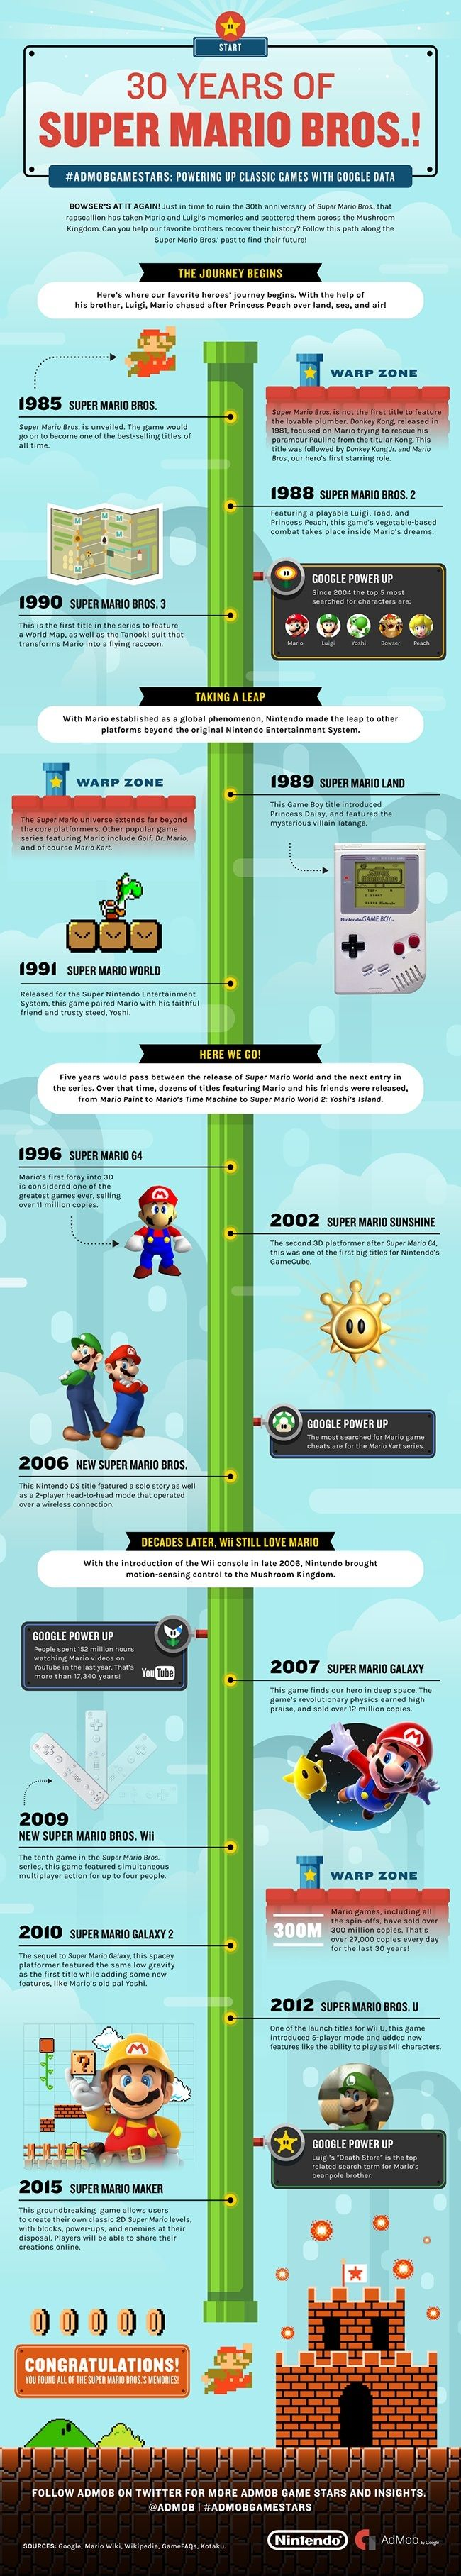 Super Mario Bros 30th